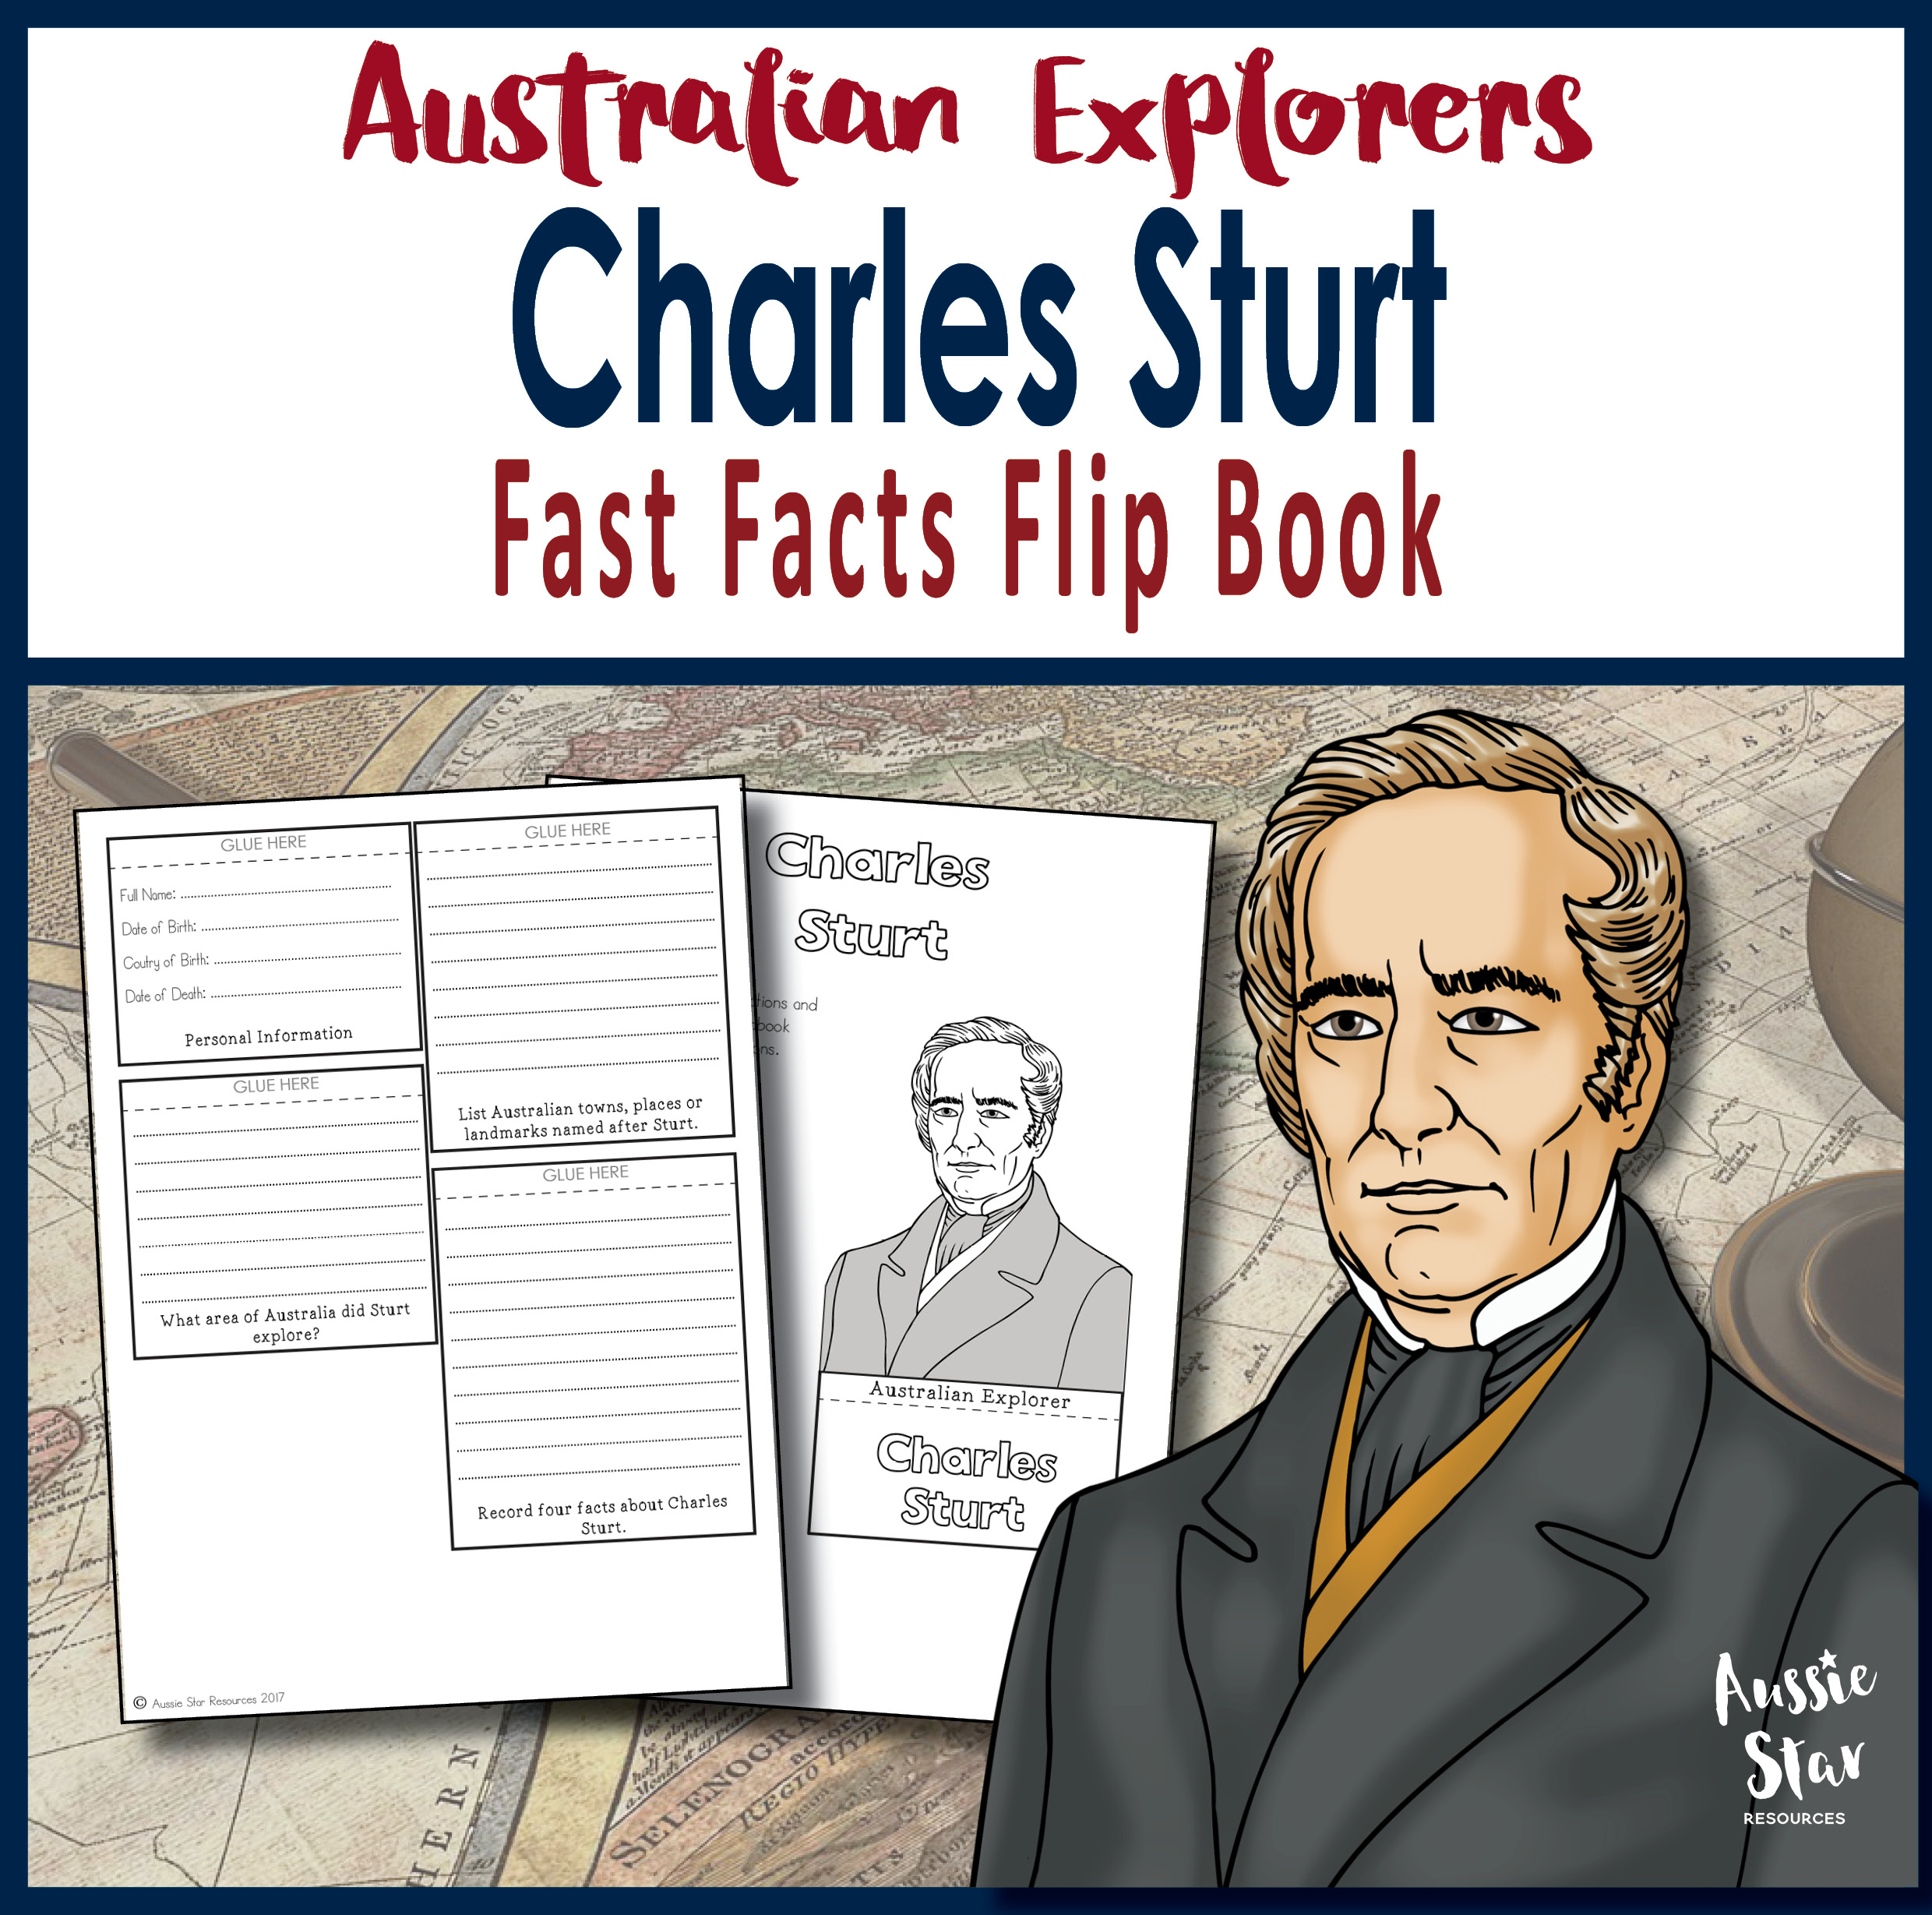 Charles Sturt fast facts flip book